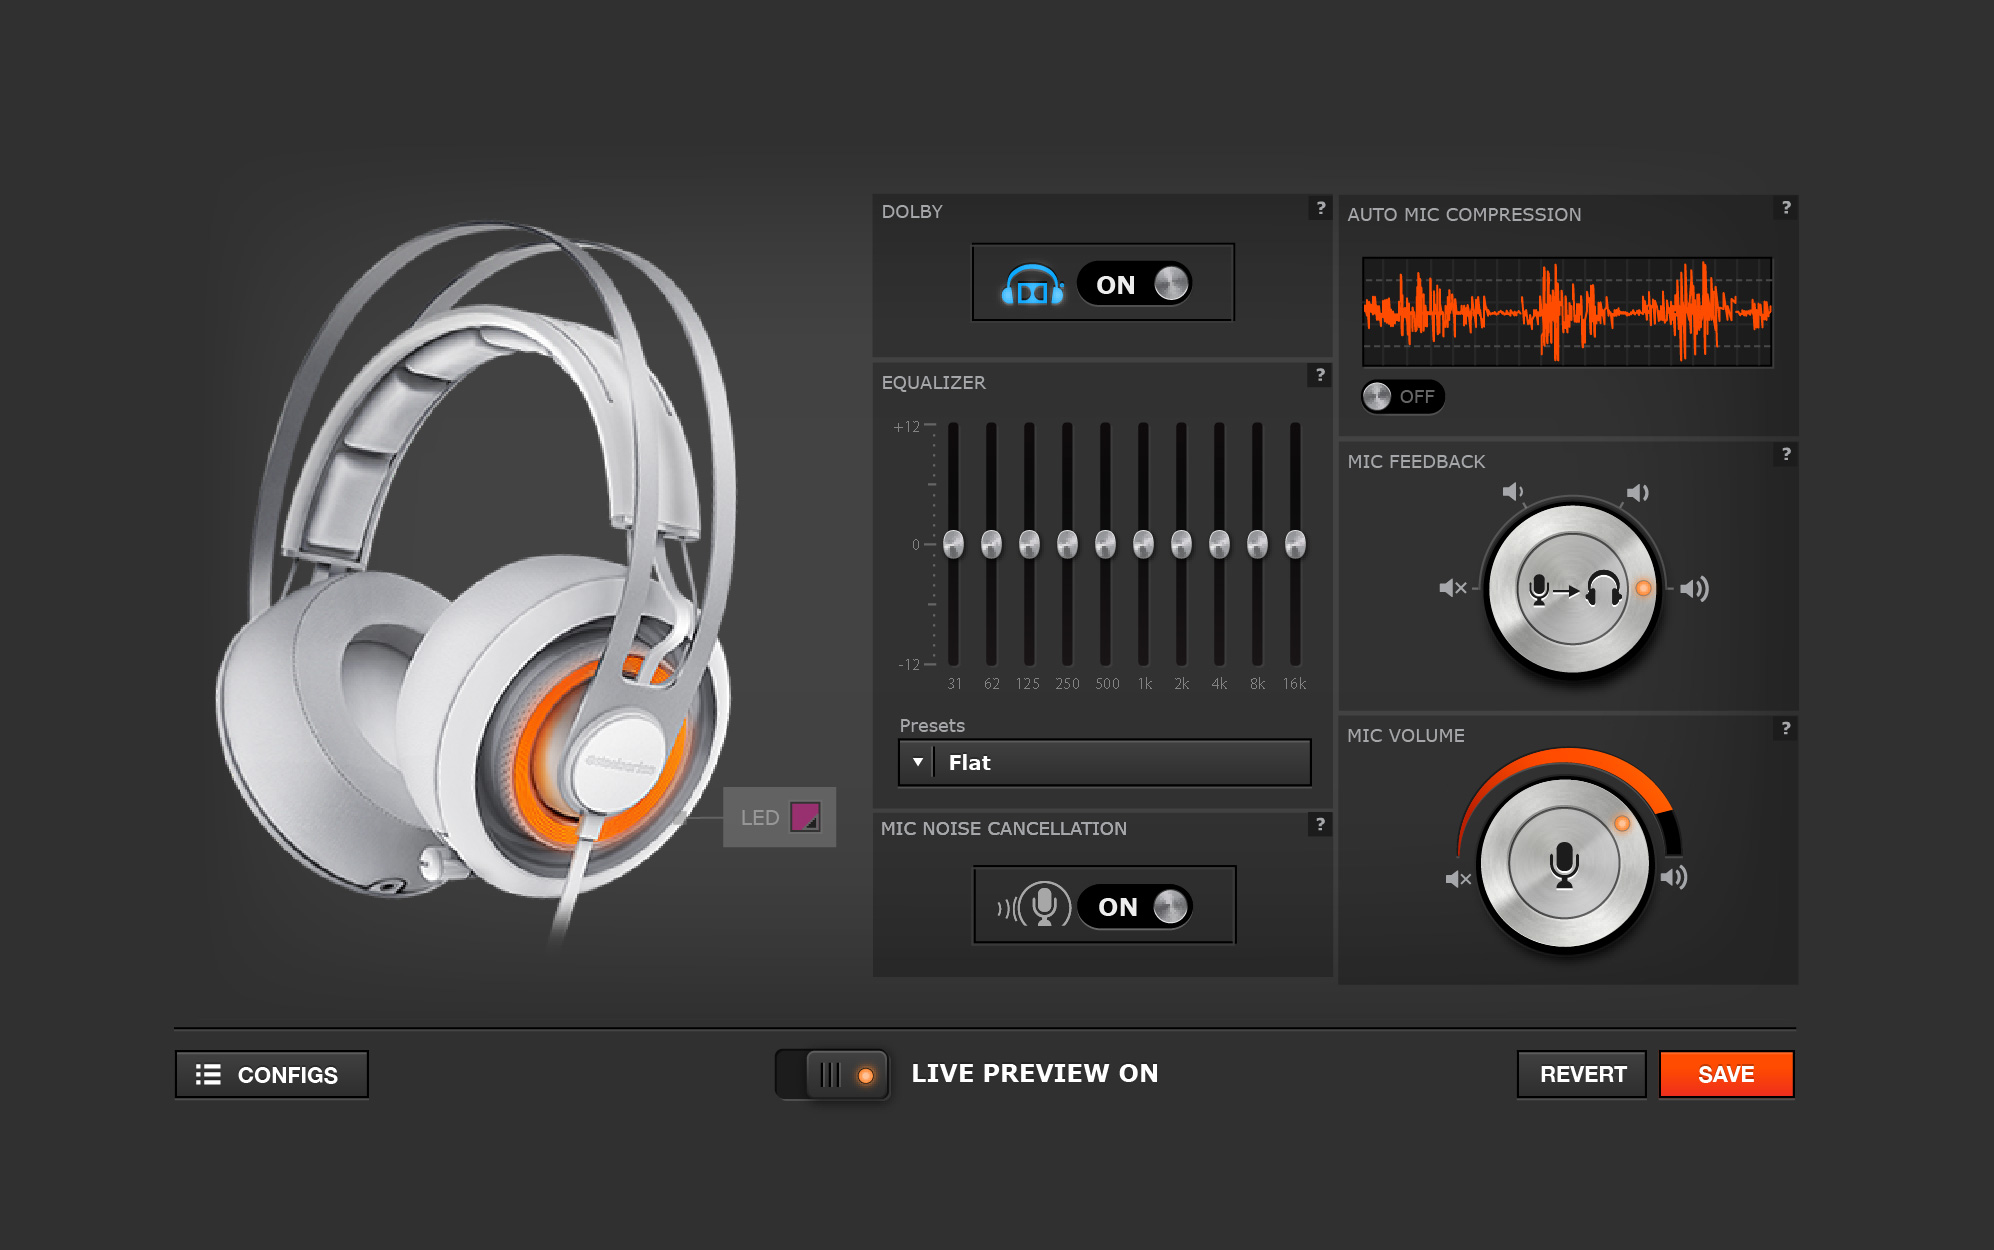 Customization interface for the Siberia Elite headset.